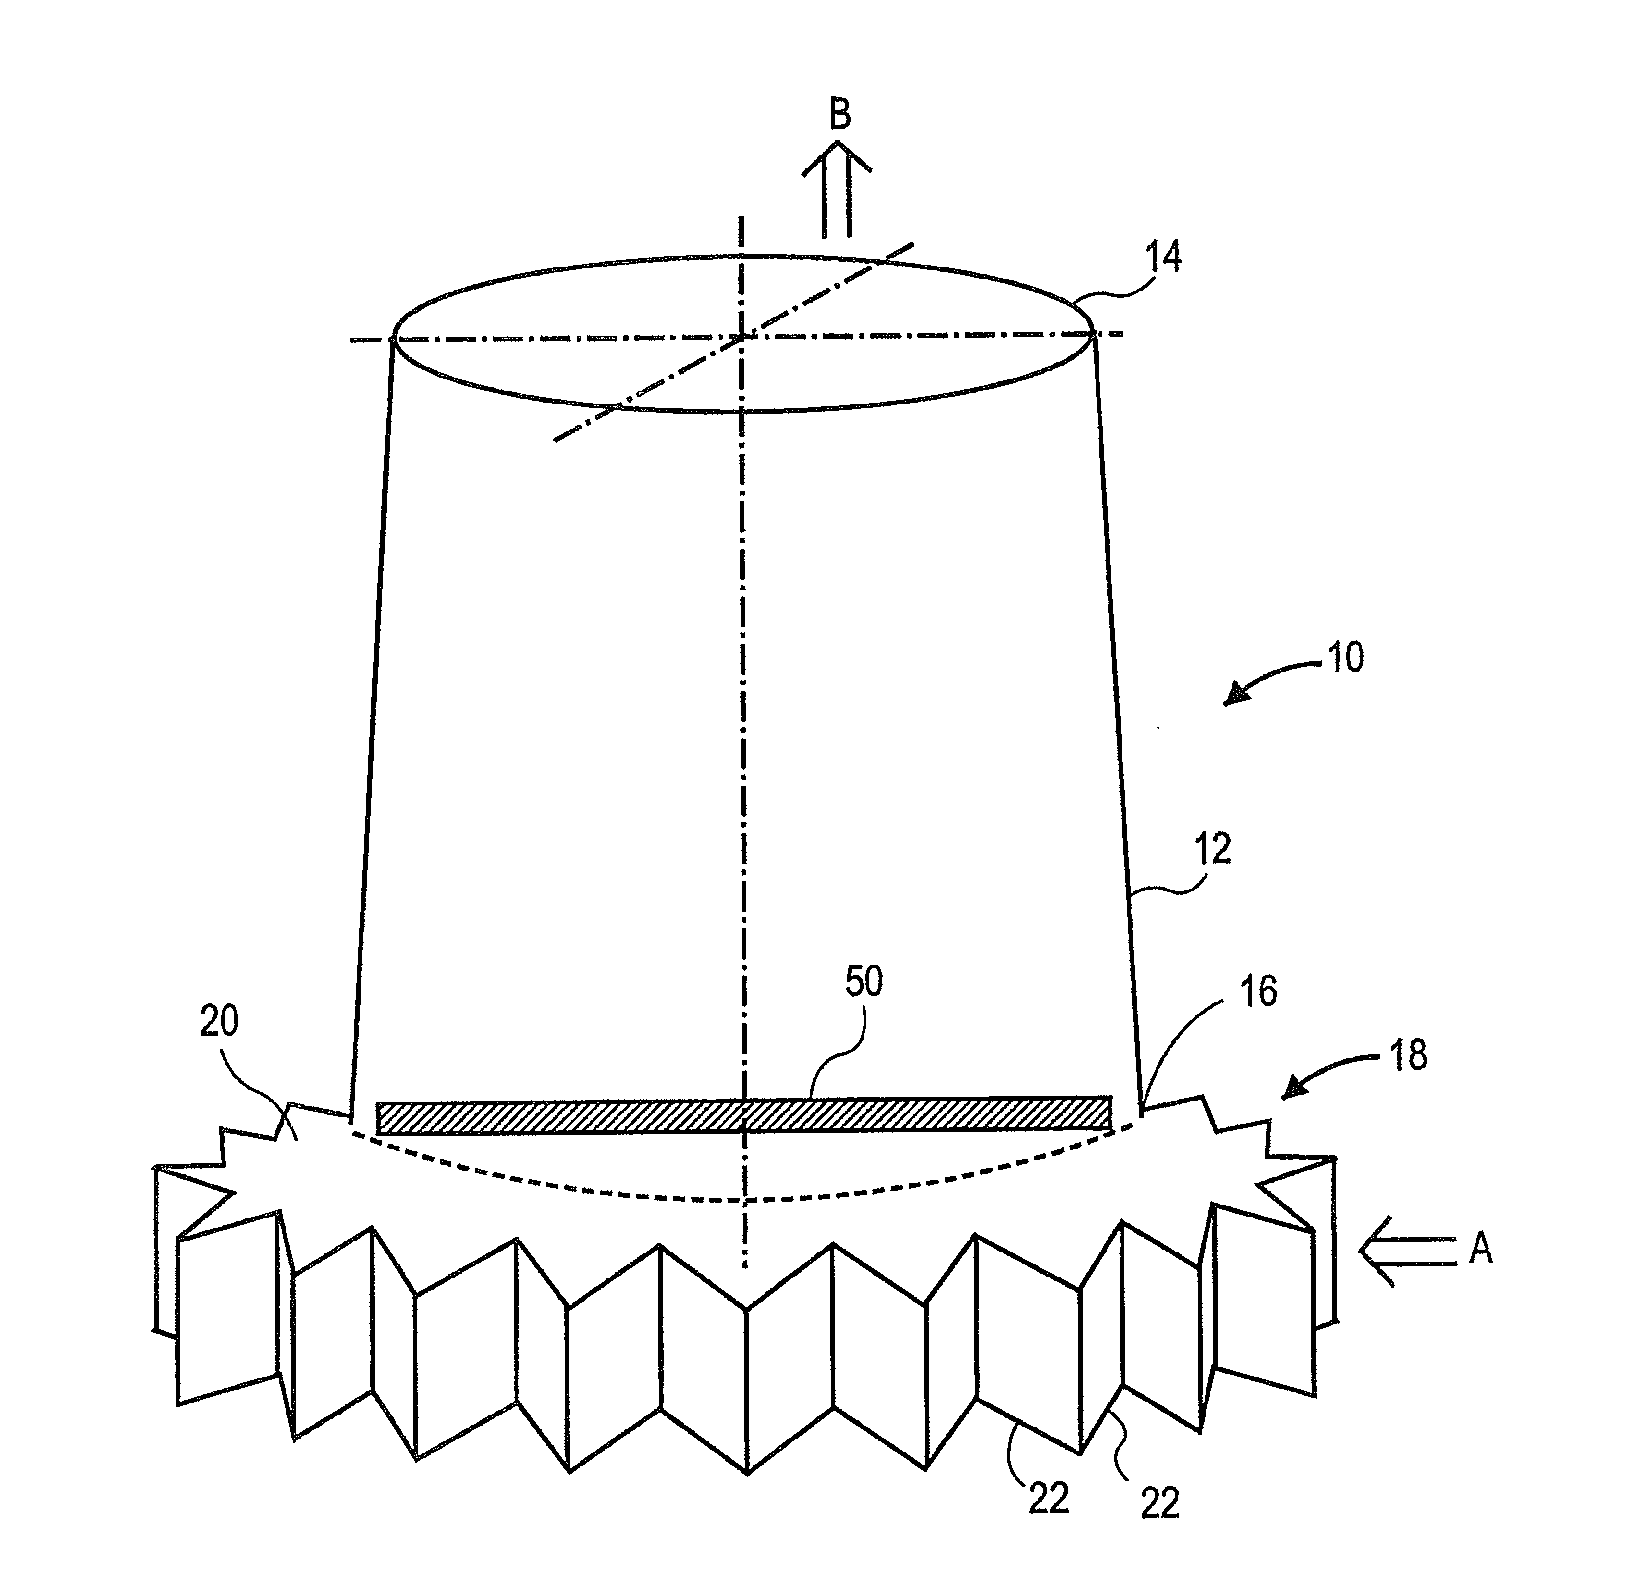 Patent US Natural draft air cooled steam condenser and